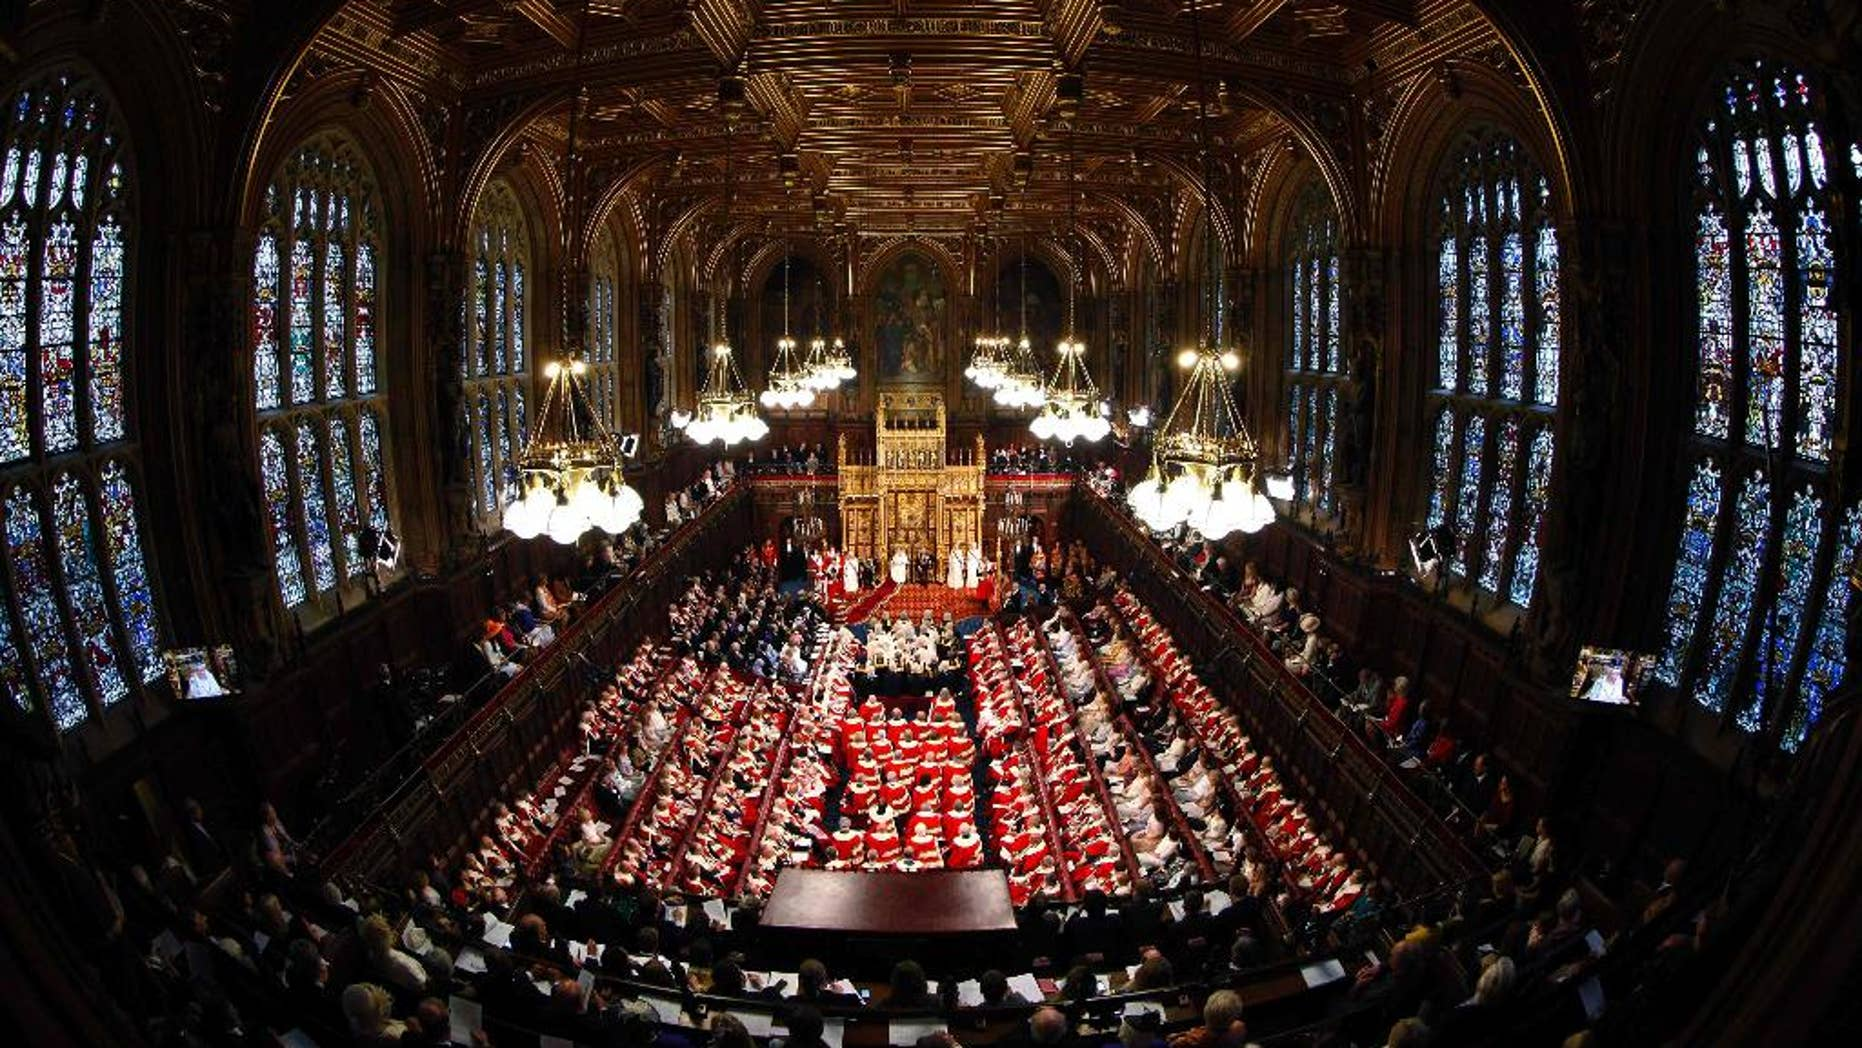 FILE - This is a Wednesday June 4, 2014  file photo of Britain's Queen Elizabeth, rear centre, as she delivers her speech in the House of Lords, during the State Opening of Parliament at the Palace of Westminster in London . An annual speech, read by the monarch at the ceremonial State Opening of Parliament, the Queen's Speech is written by the government and outlines its legislative program. Winning the vote that follows is crucial to the survival of any government. This year's Queen's Speech will be May 27, when either Conservative leader David Cameron or Labour's Ed Miliband will unveil his government's plans. (Suzanne Plunkett/Pool Photo via AP, File)